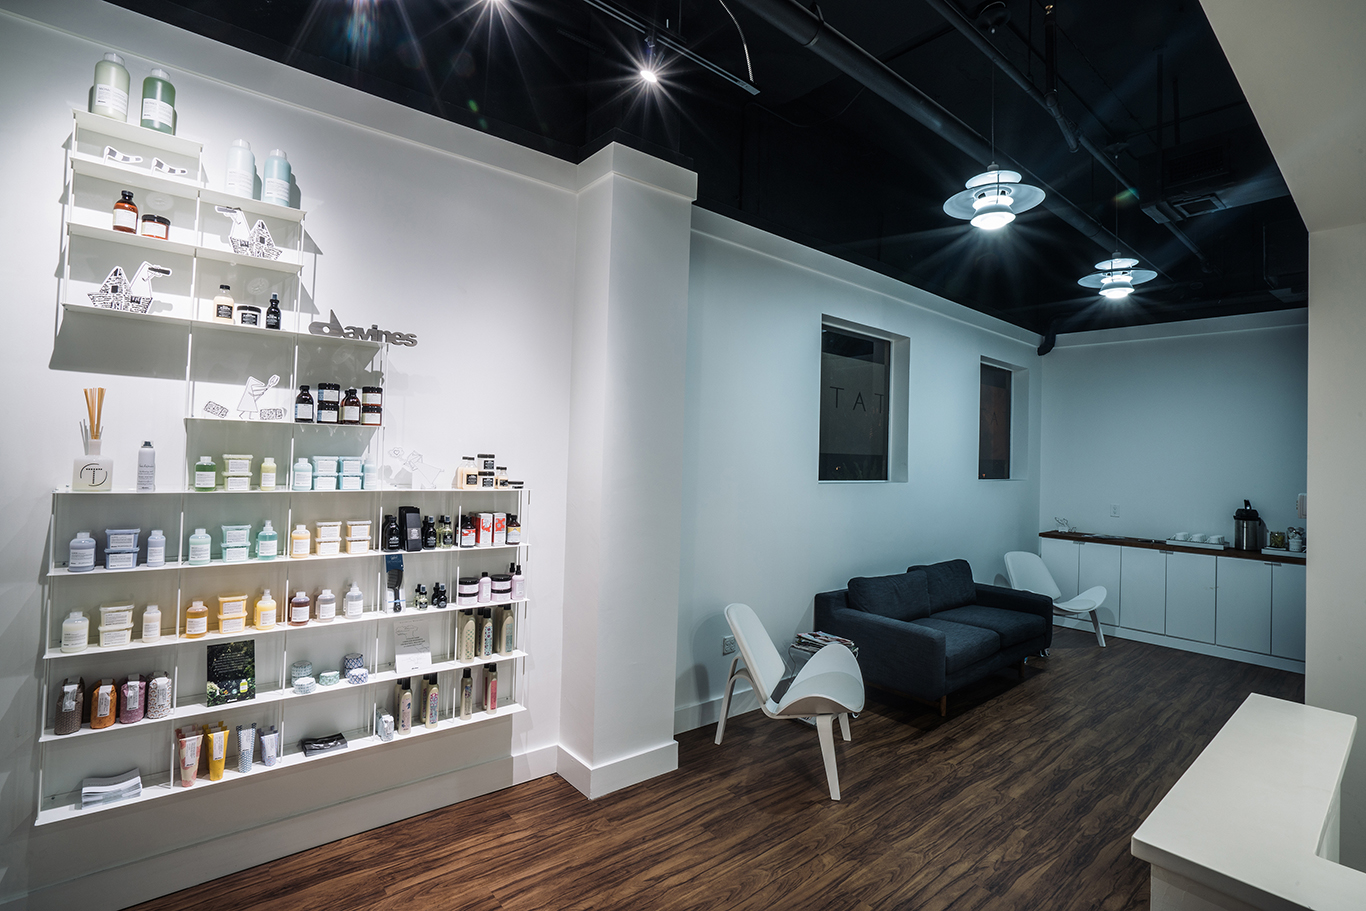 Salon tate in fort myers fl beauty salons yellow pages for 3 13 salon marietta